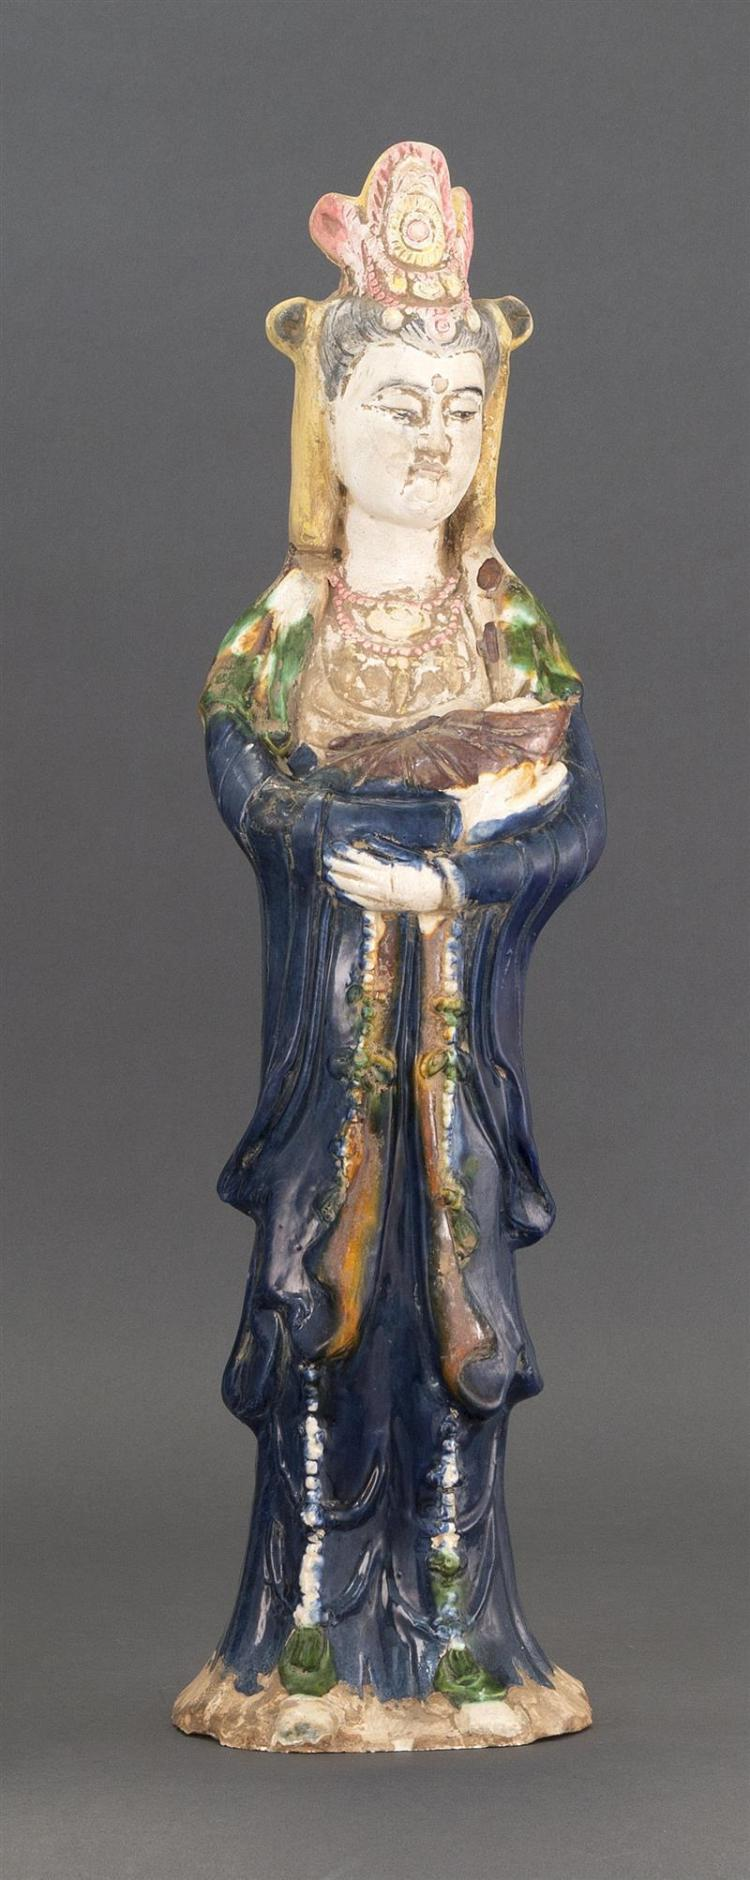 SANCAI PORCELAIN FIGURE OF GUANYIN Dressed in blue robes while cradling an infant. Unglazed from bust up. Height 19.5